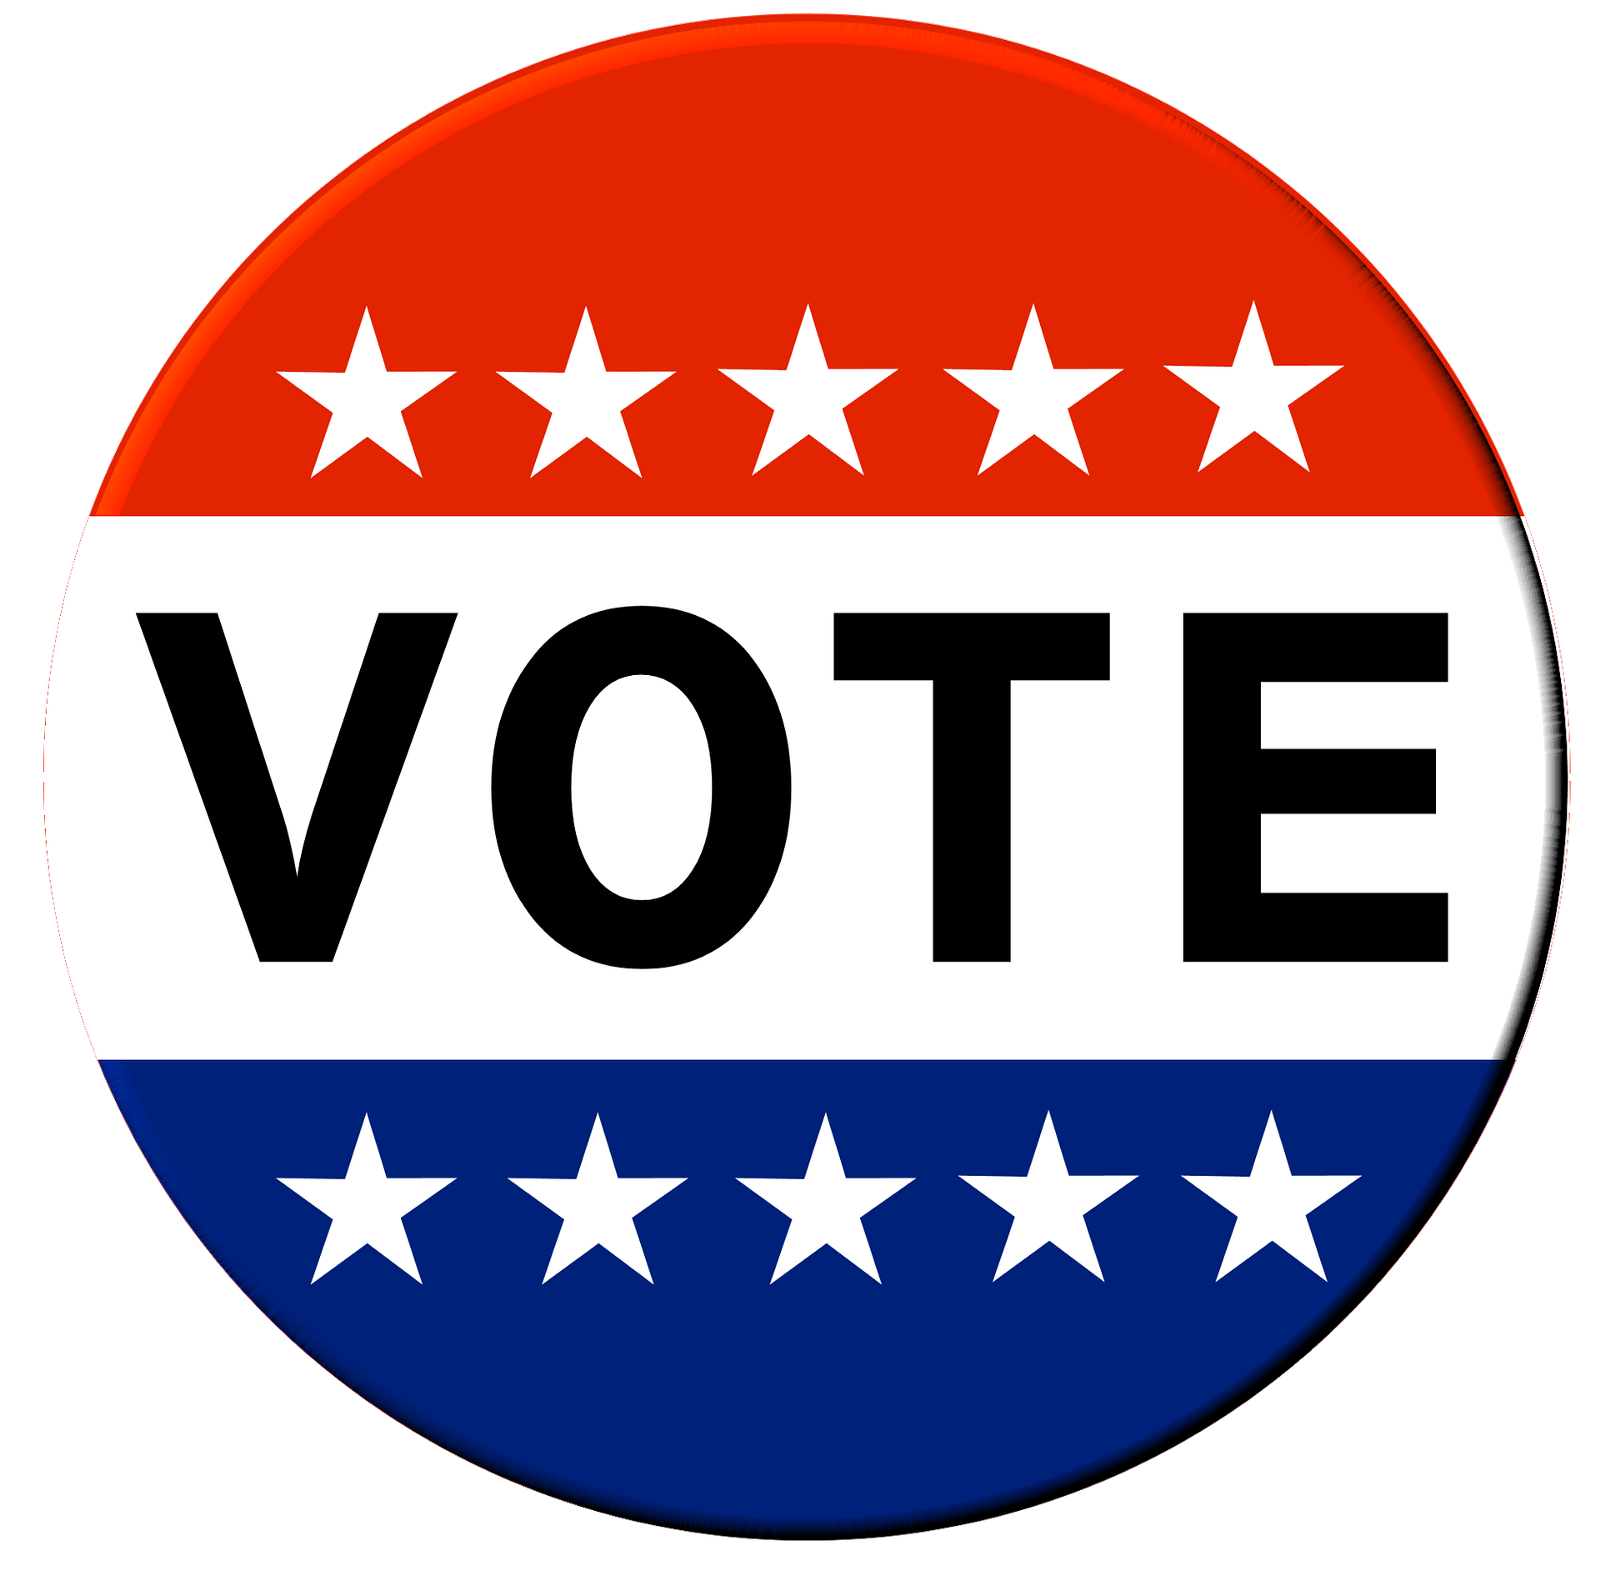 Democracy clipart school election. Meet the candidates in